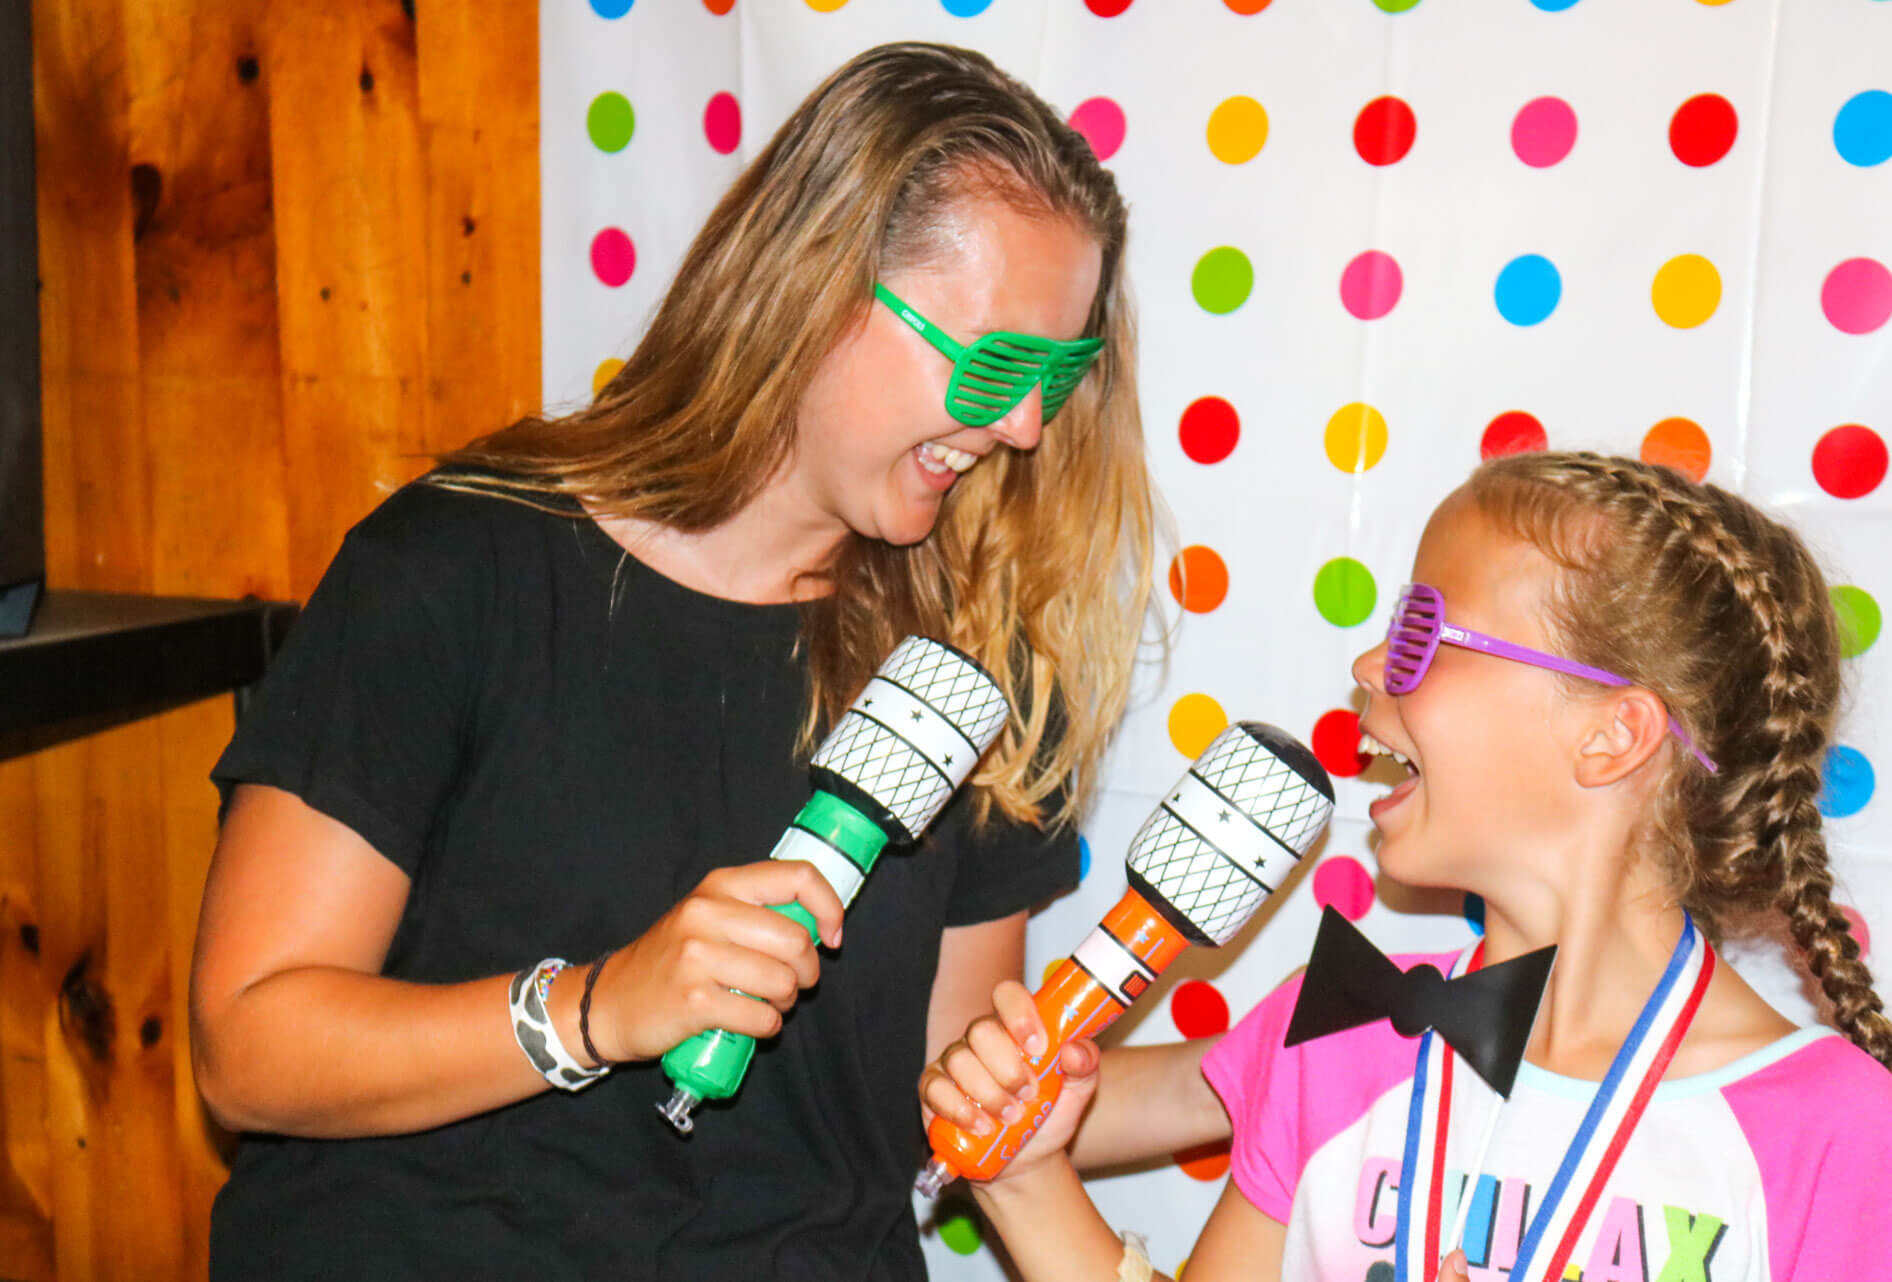 Counselor and camper sing into colorful microphones